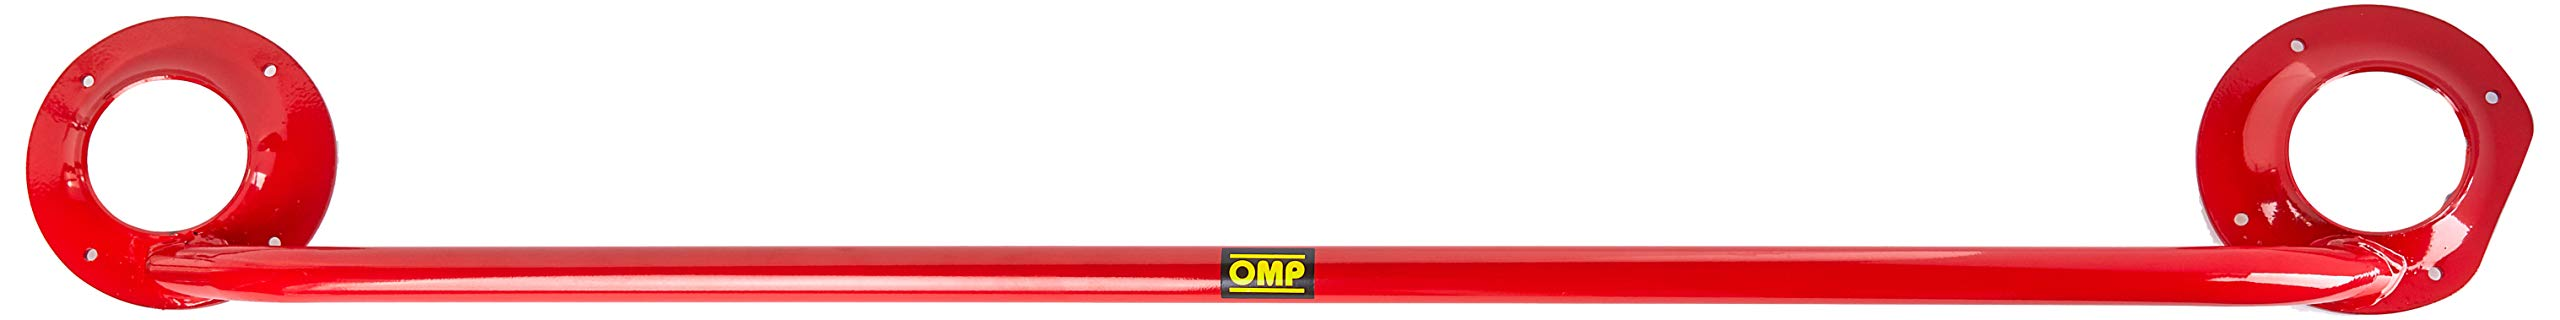 Omp ompma/1782 Bar Reinforcement Suspension